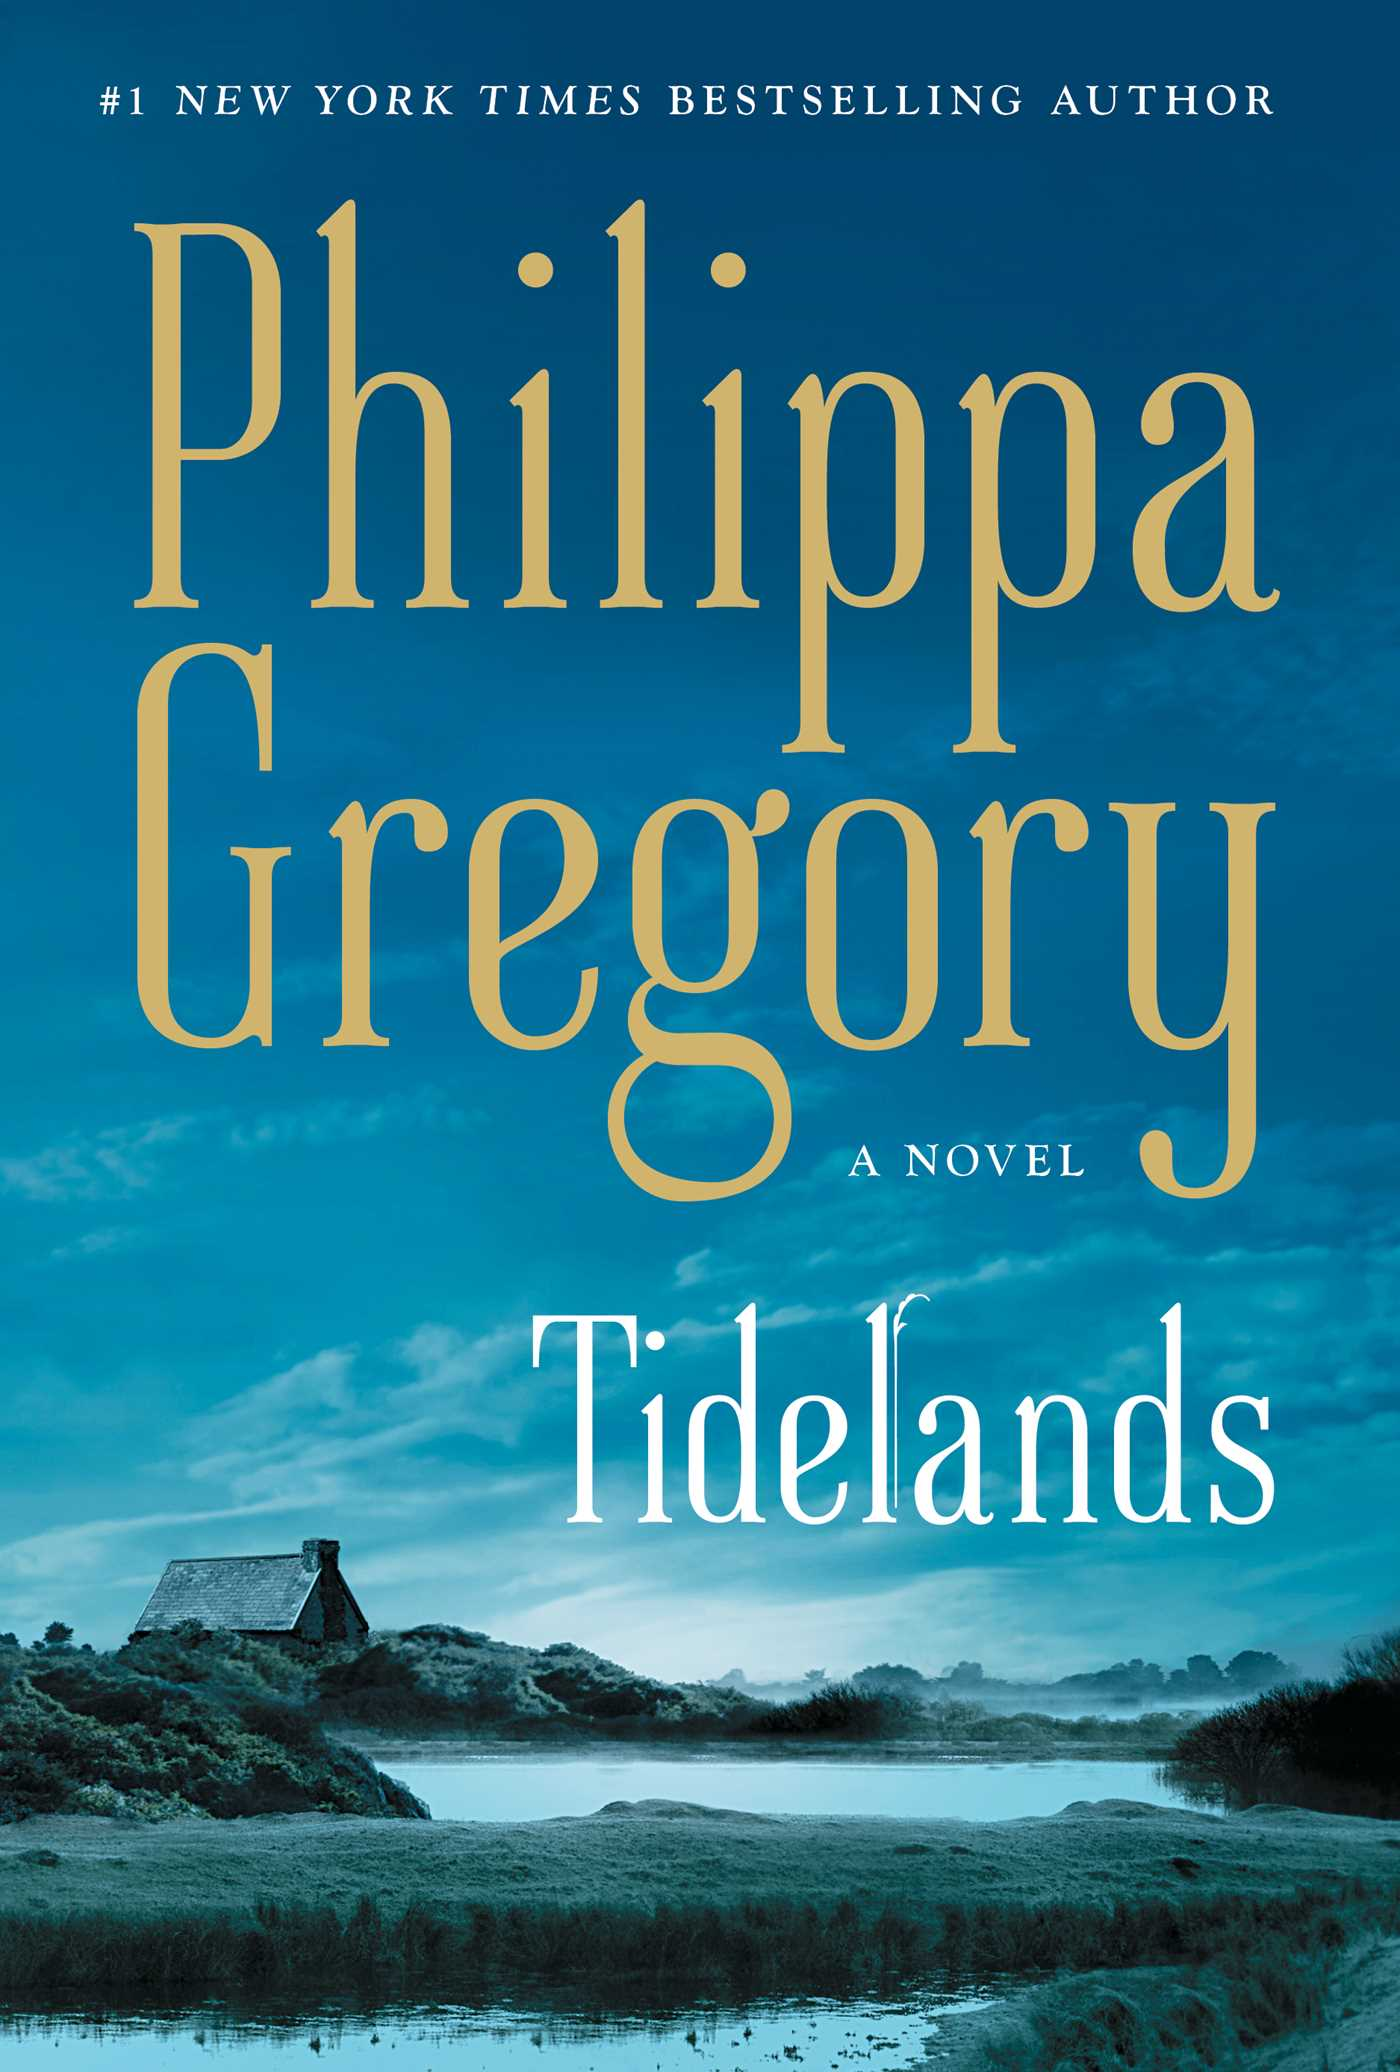 Tidelands | Book by Philippa Gregory | Official Publisher Page